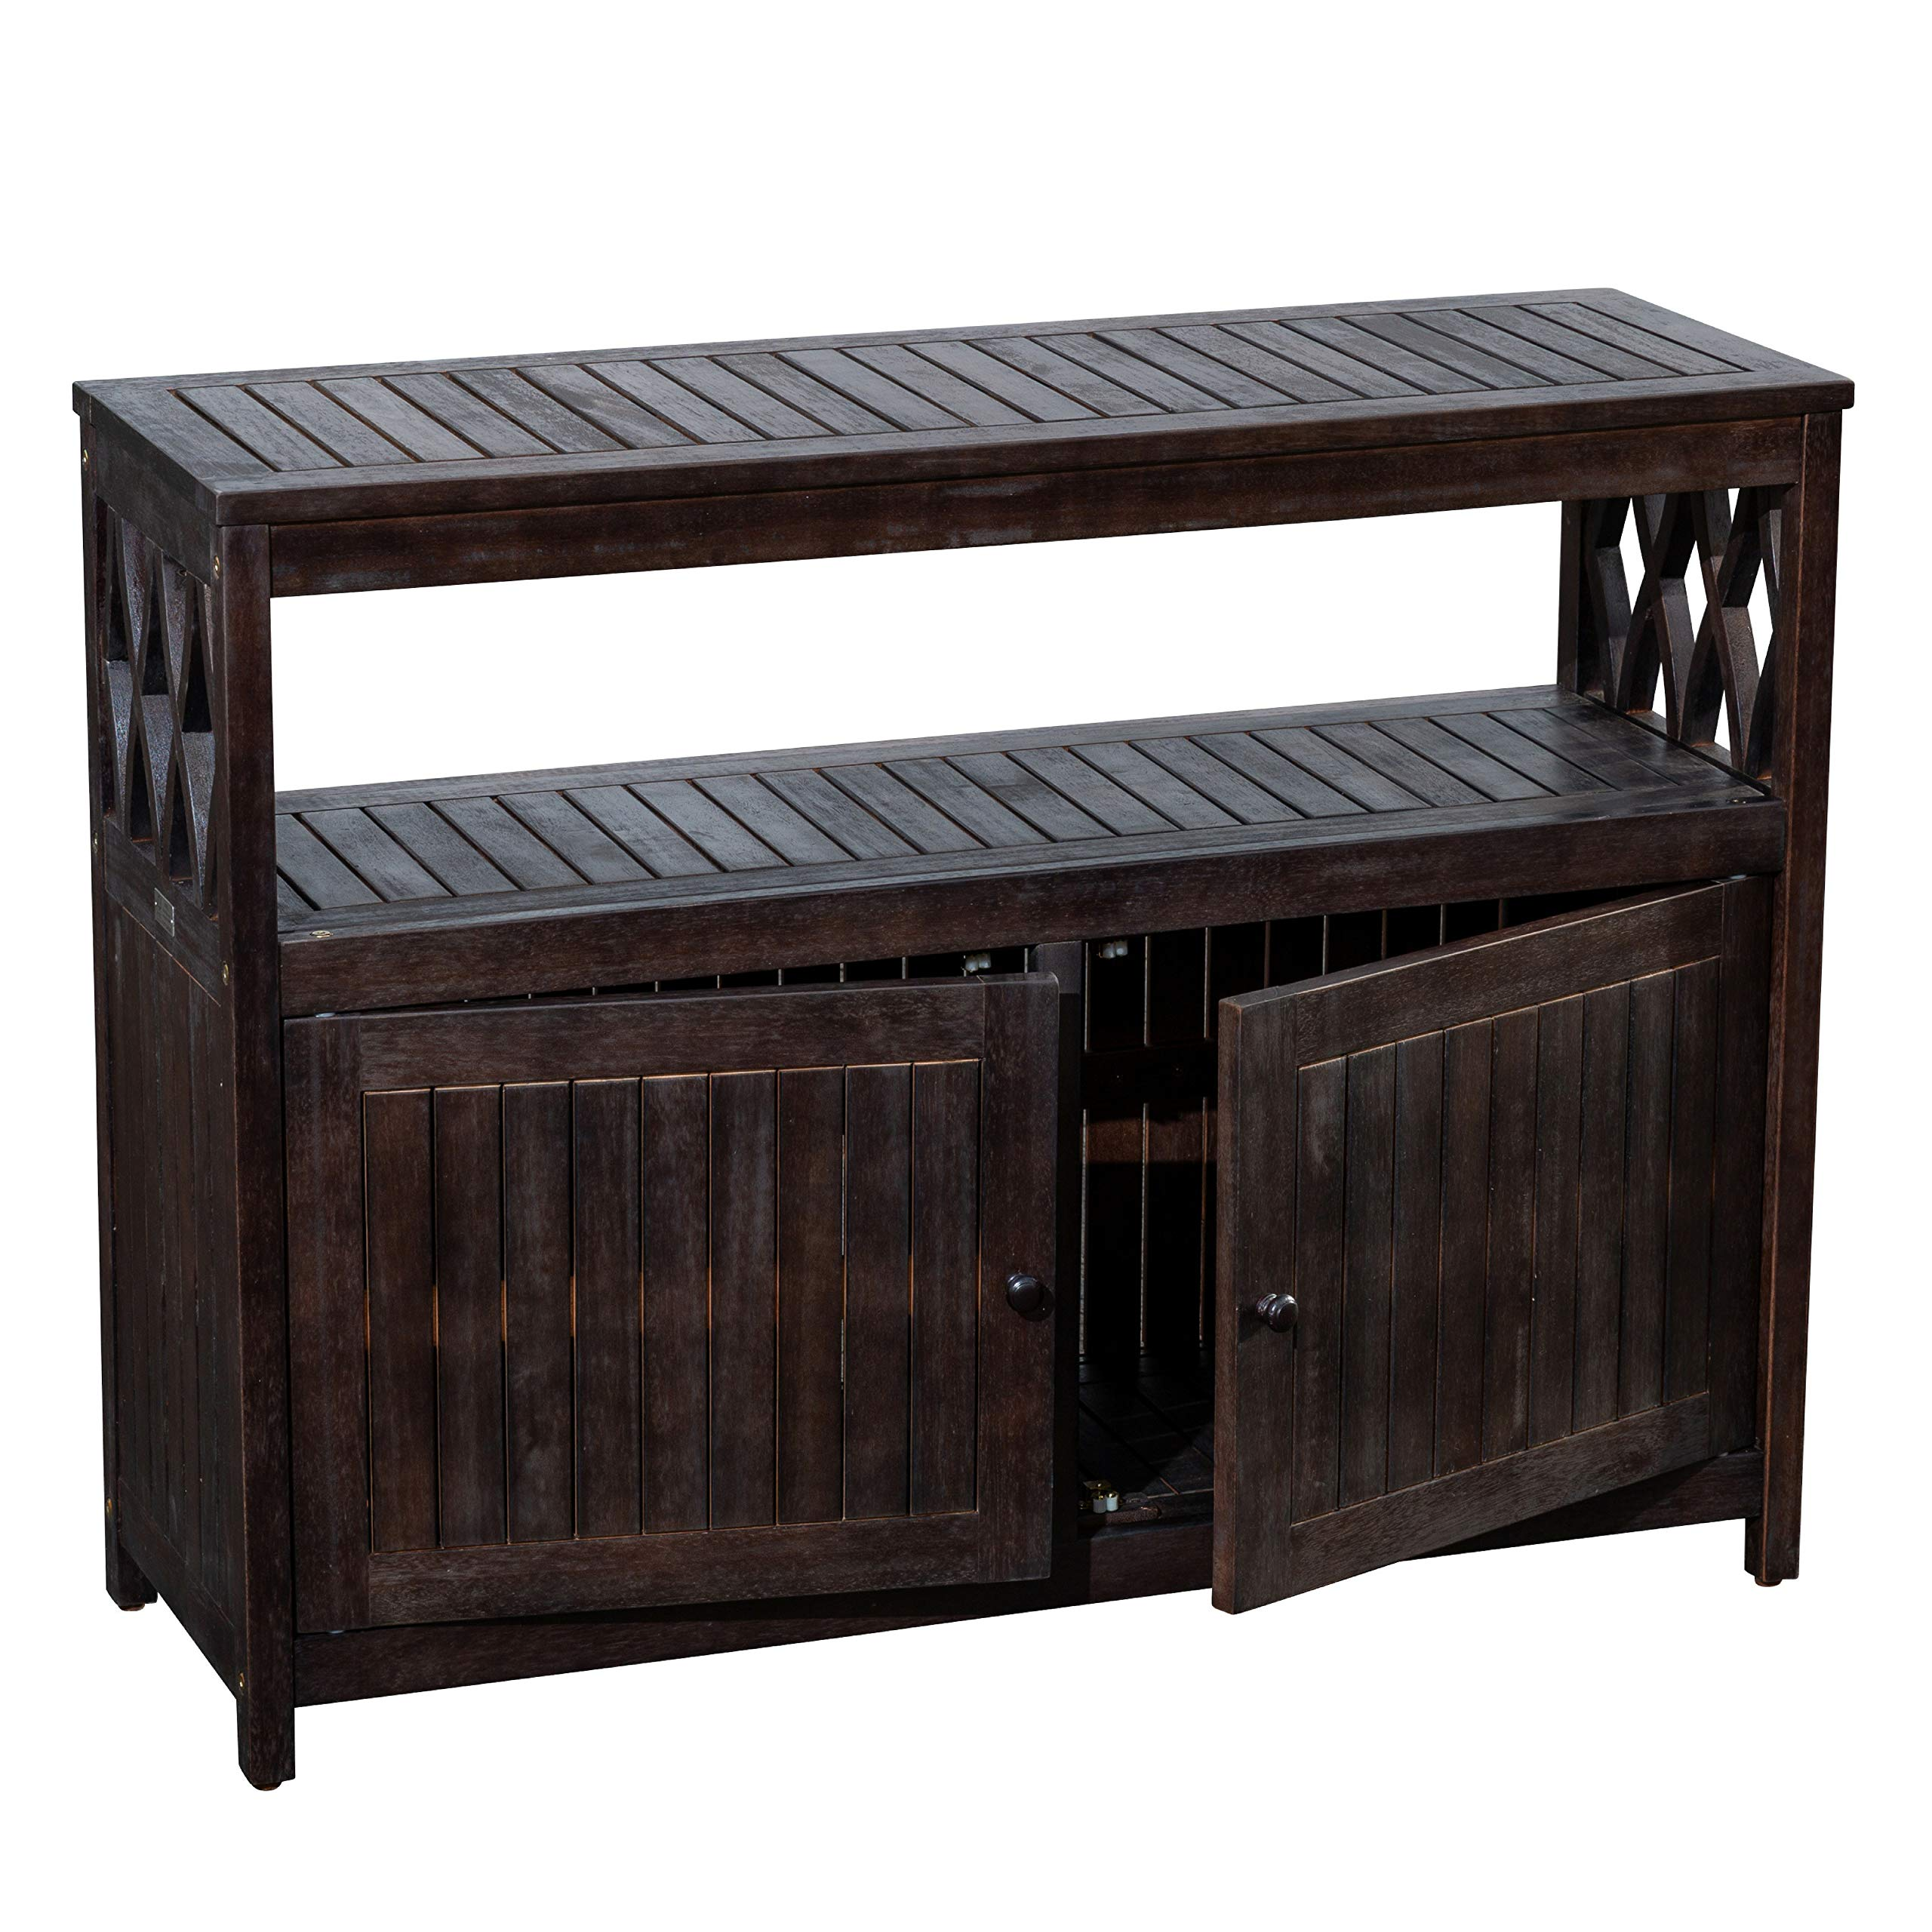 DTY Outdoor Living Longs Peak Eucalyptus Sideboard, Outdoor Living Patio Furniture Collection - Espresso by DTY